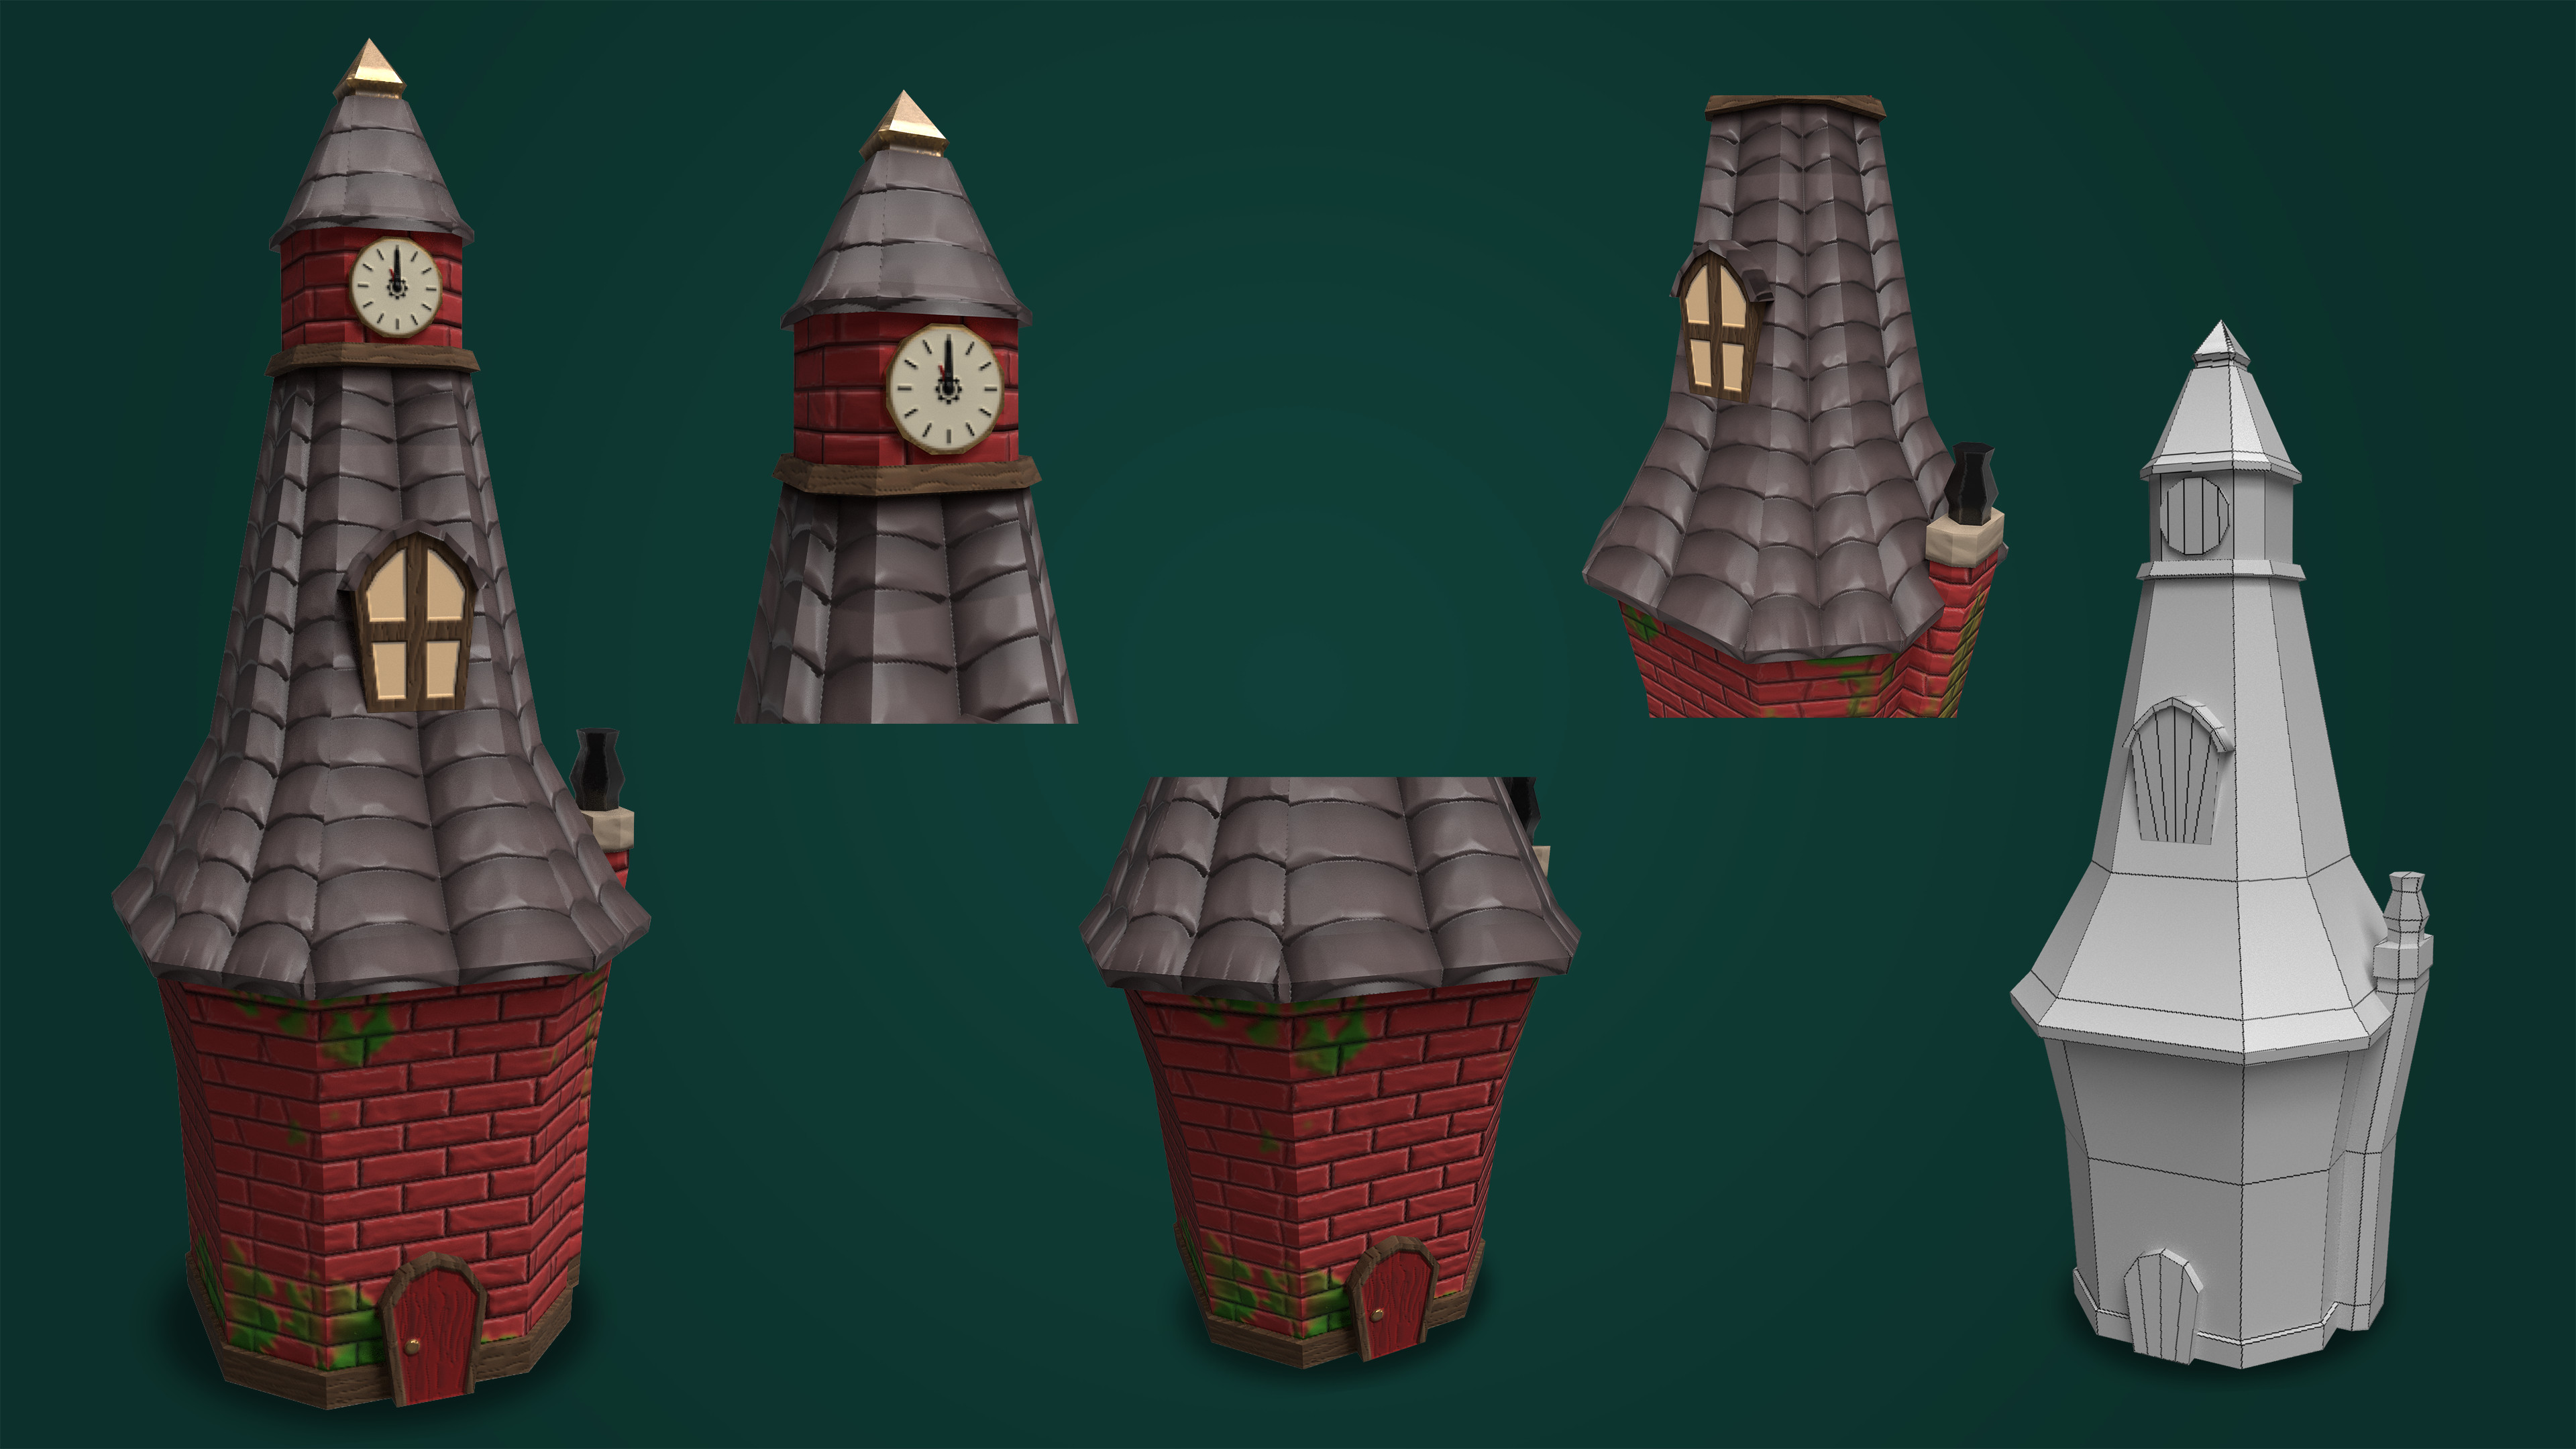 Stylized Town Clocktower.